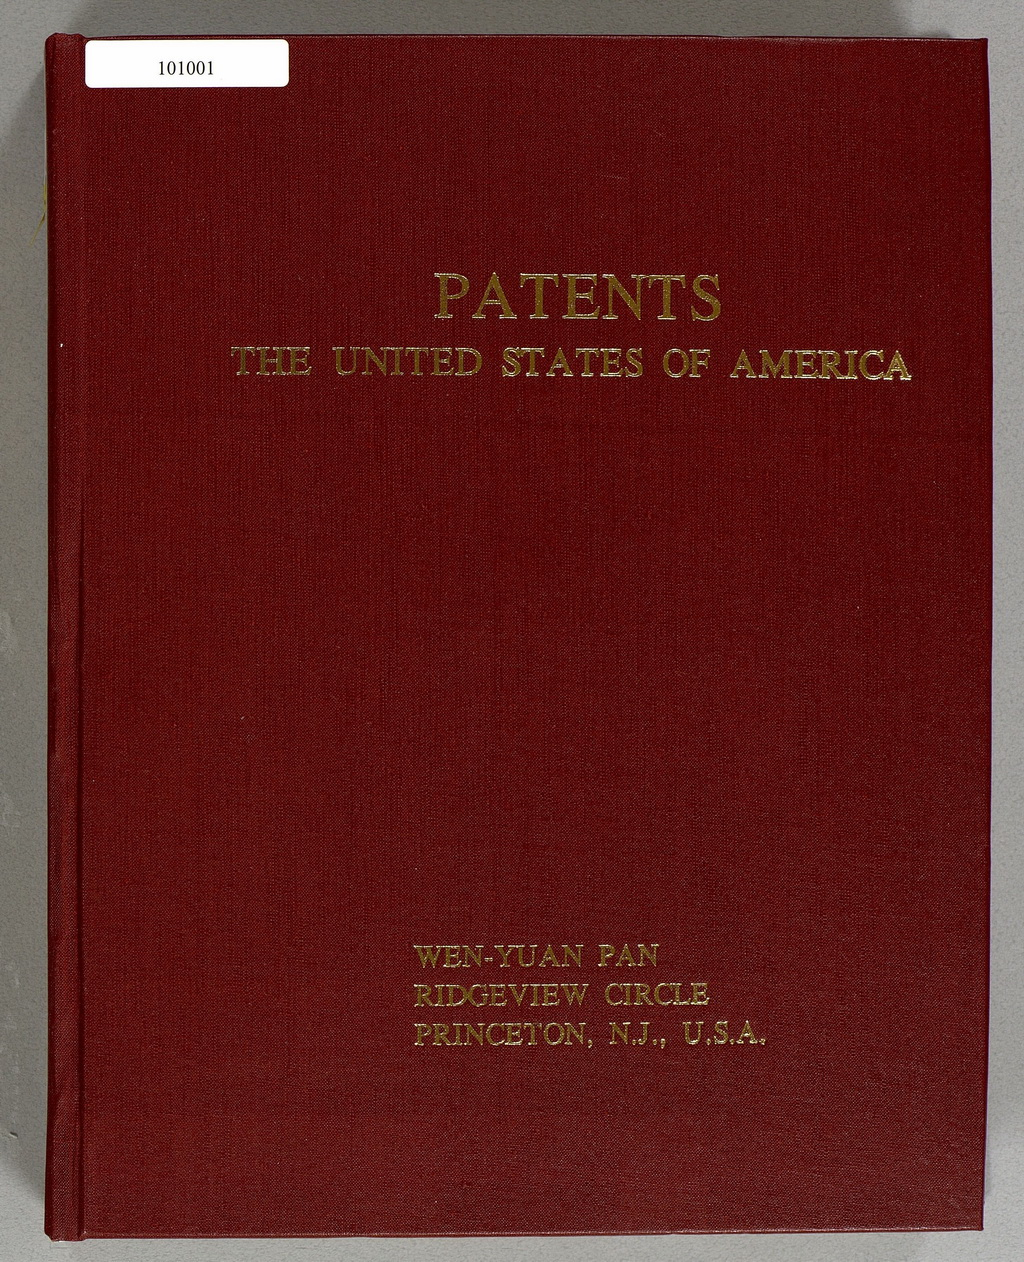 PATENTS: THE UNITED STATES OF AMERICA